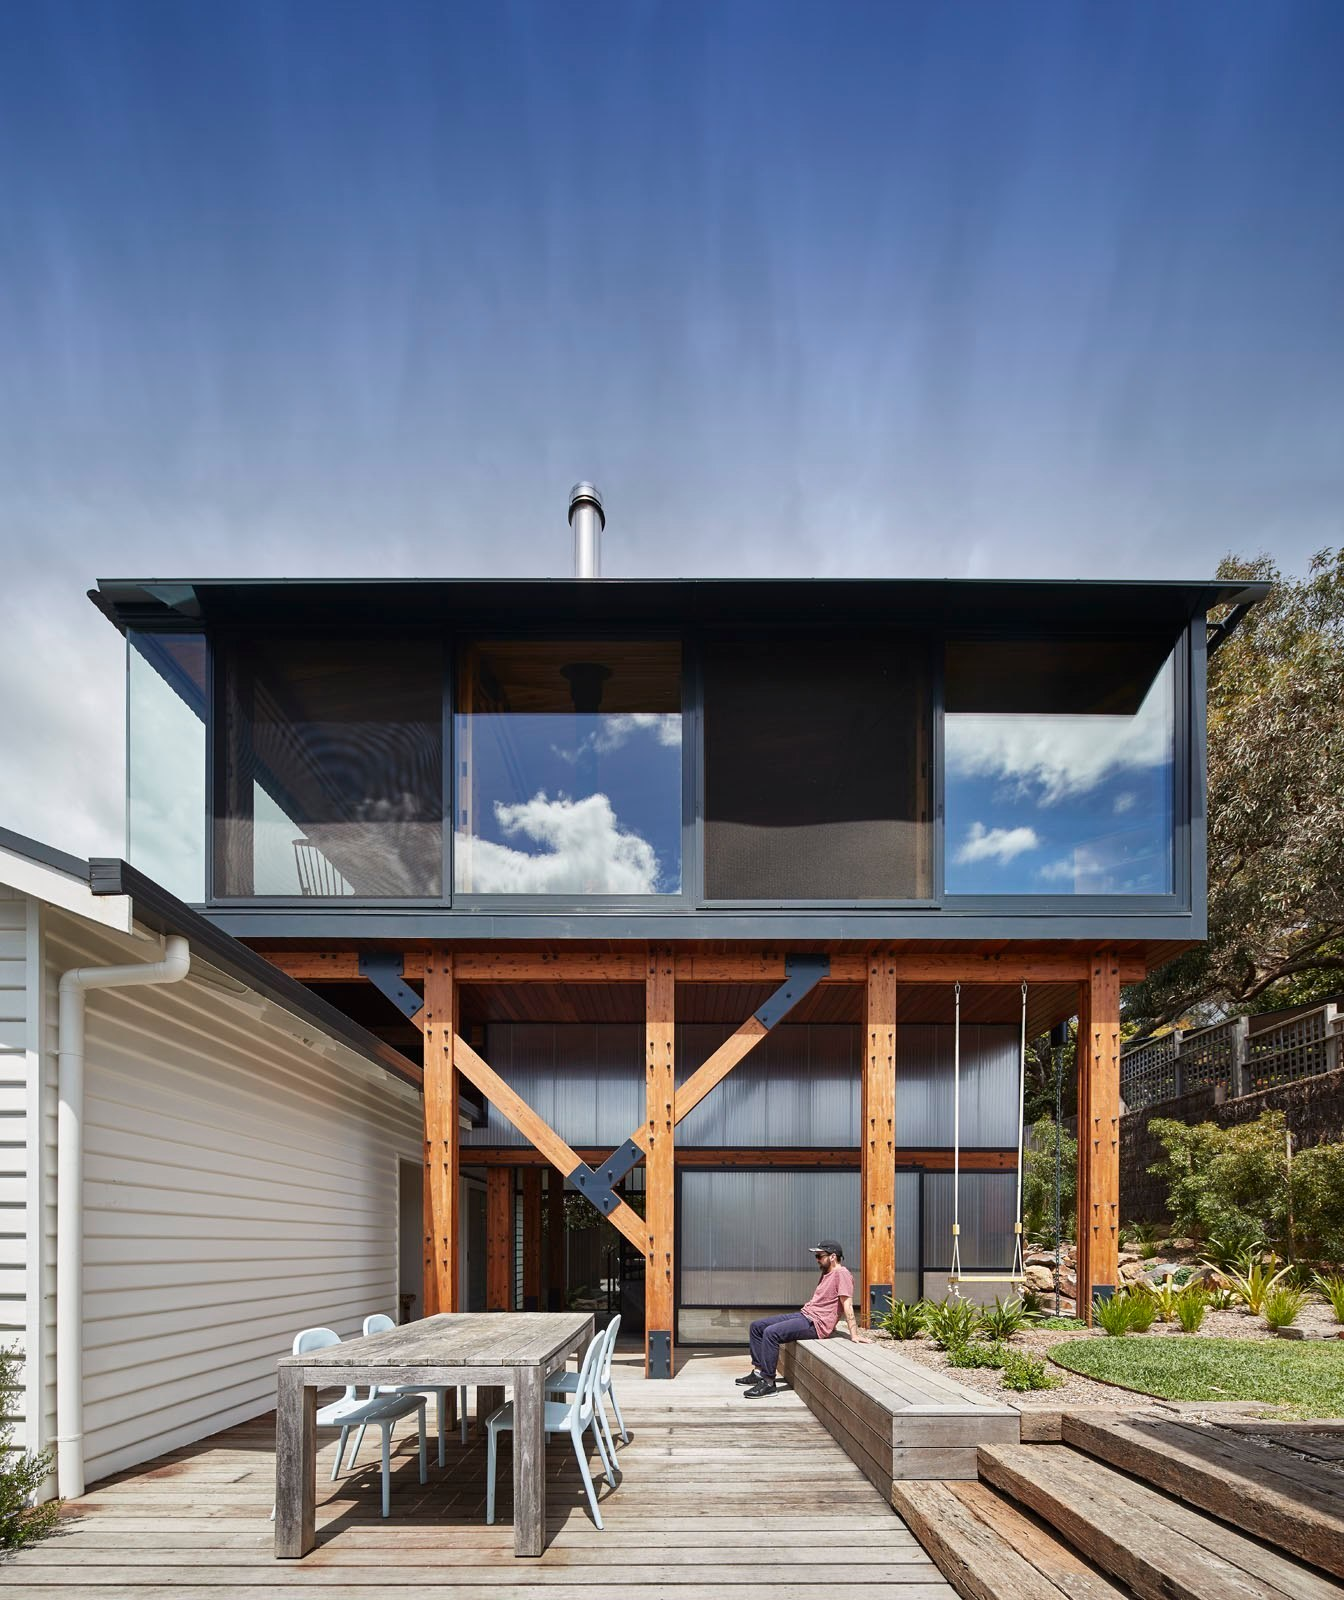 7_Dorman House_Austin Maynard Architects_Inspirationist